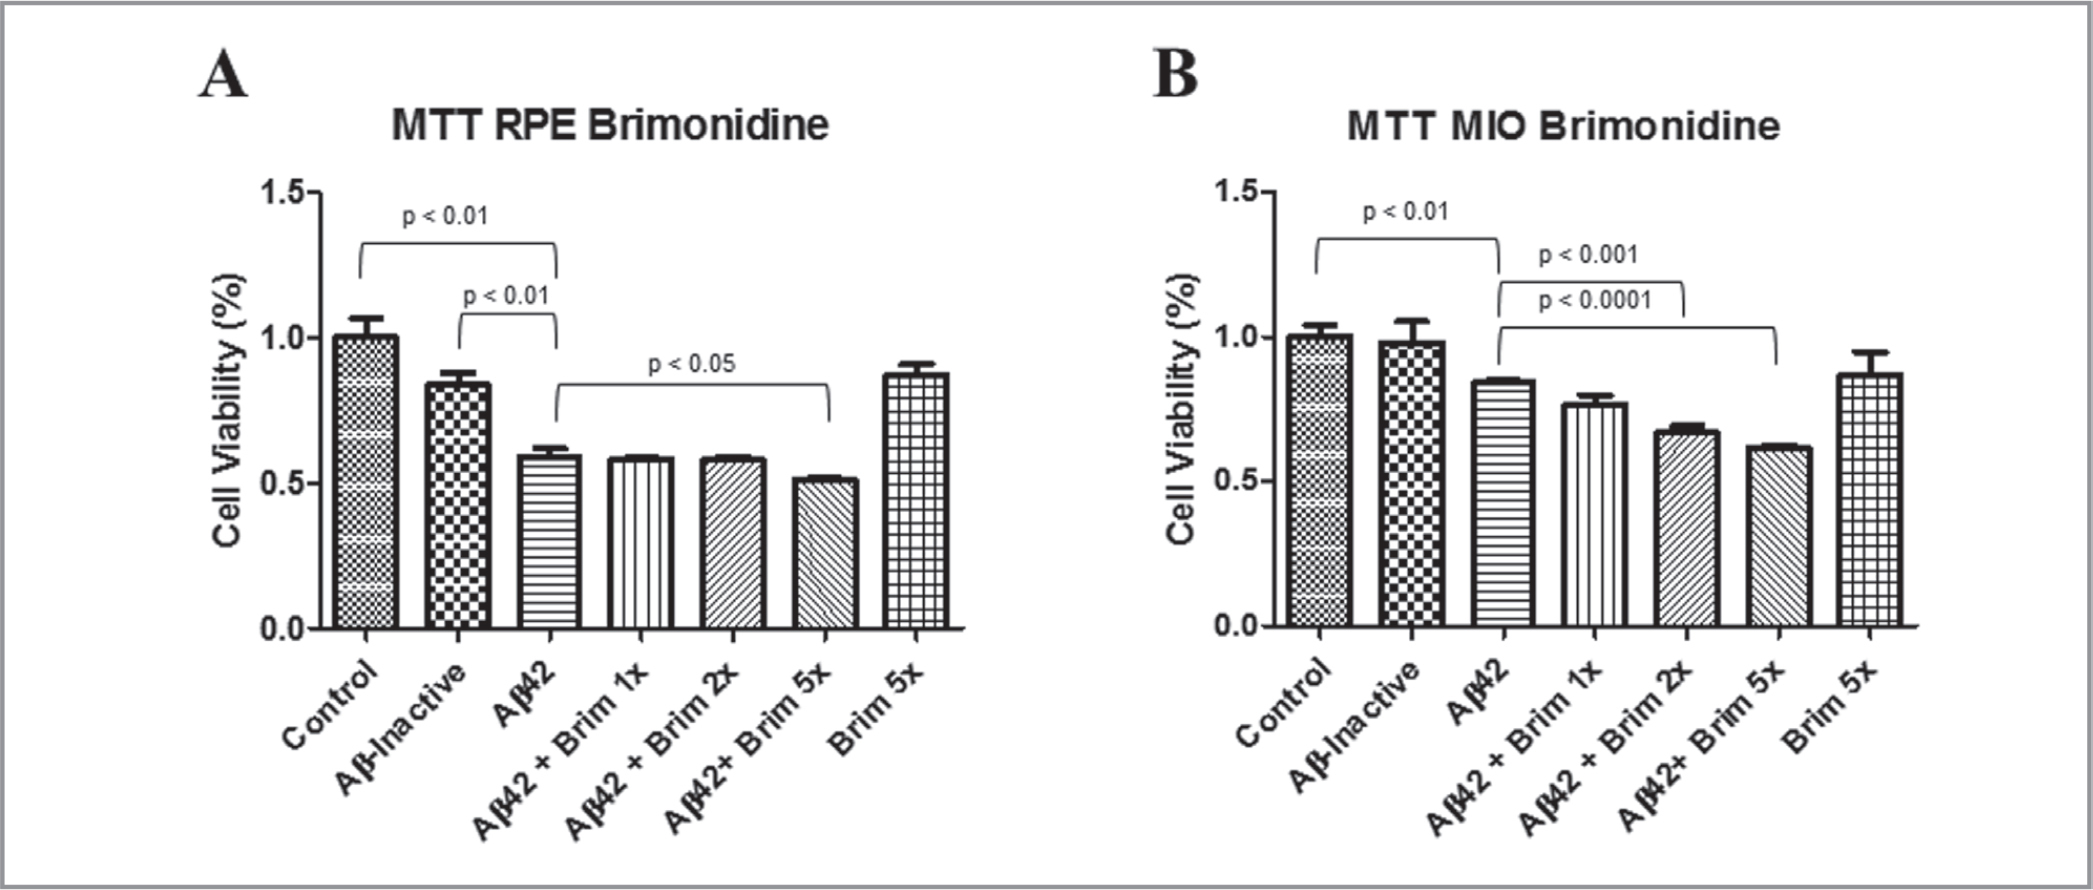 Cell viability assay (MTT Assay). (A) Adult human retinal pigment epithelial (RPE) cells after pretreatment with 1×, 2×, and 5× concentrations of brimonidine and exposure to amyloid-beta 1–42 (Aβ42) 10μM. (B) Müller (MIO) cells after pretreatment with 1×, 2×, and 5× concentrations of brimonidine and exposure to Aβ42 10μM. Data are normalized to set control (untreated) samples at 100% of signal for comparison.